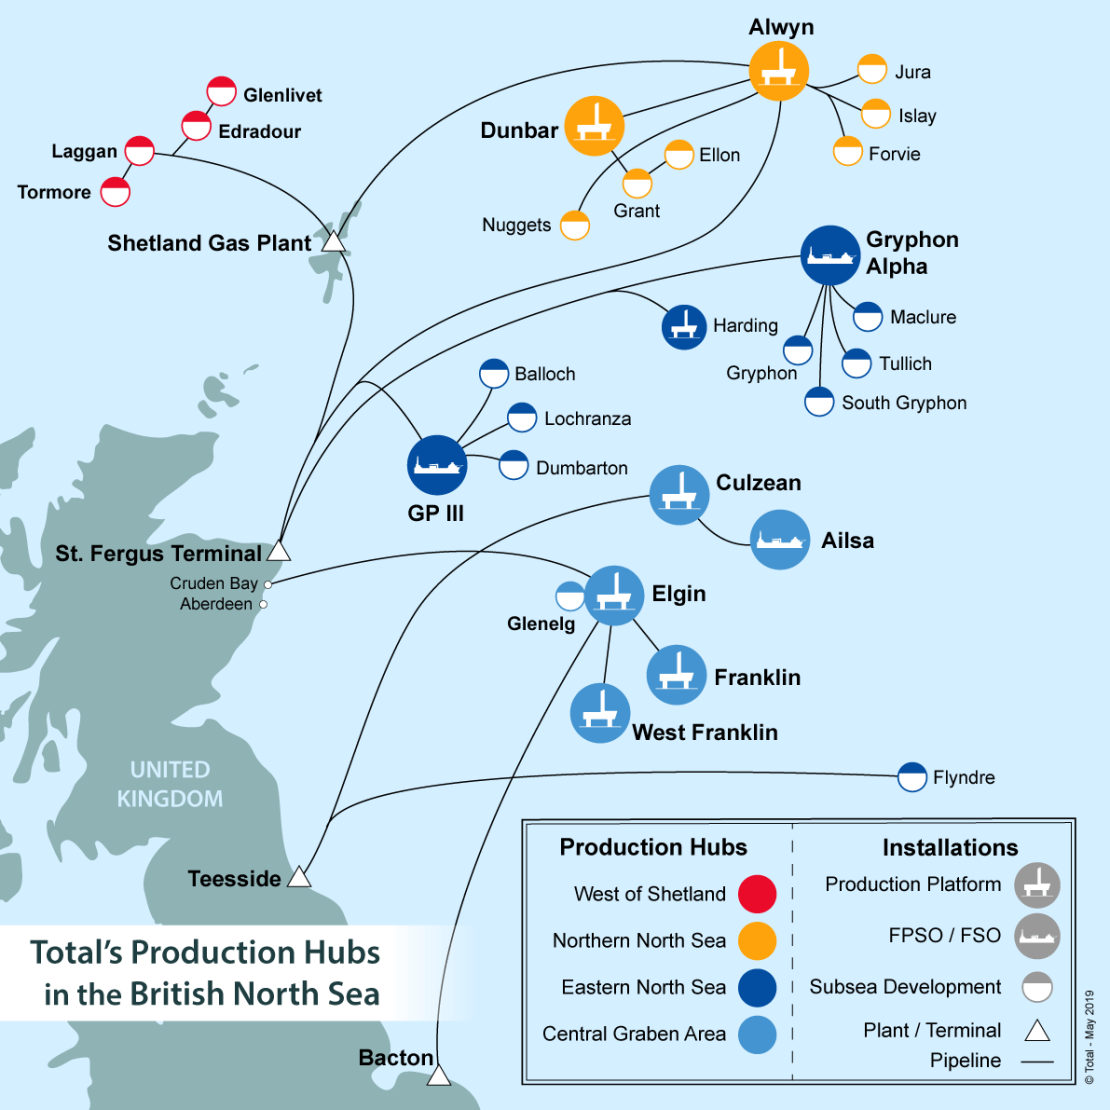 Map of the production hubs in the British North Sea